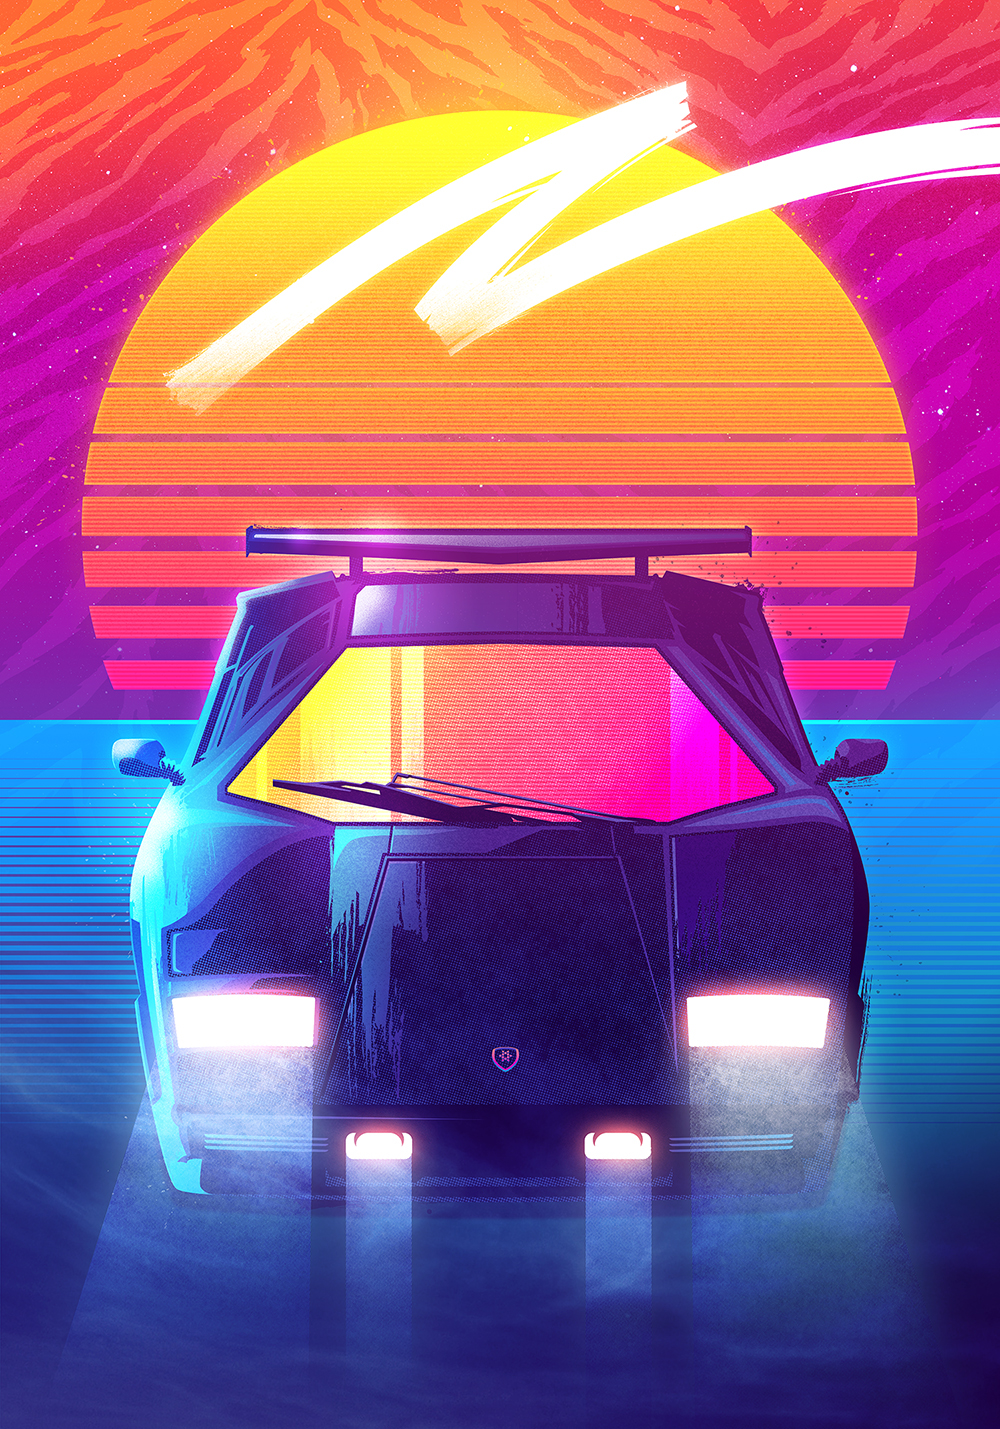 Chill Wave Car Wallpaper Outrun Series On Behance